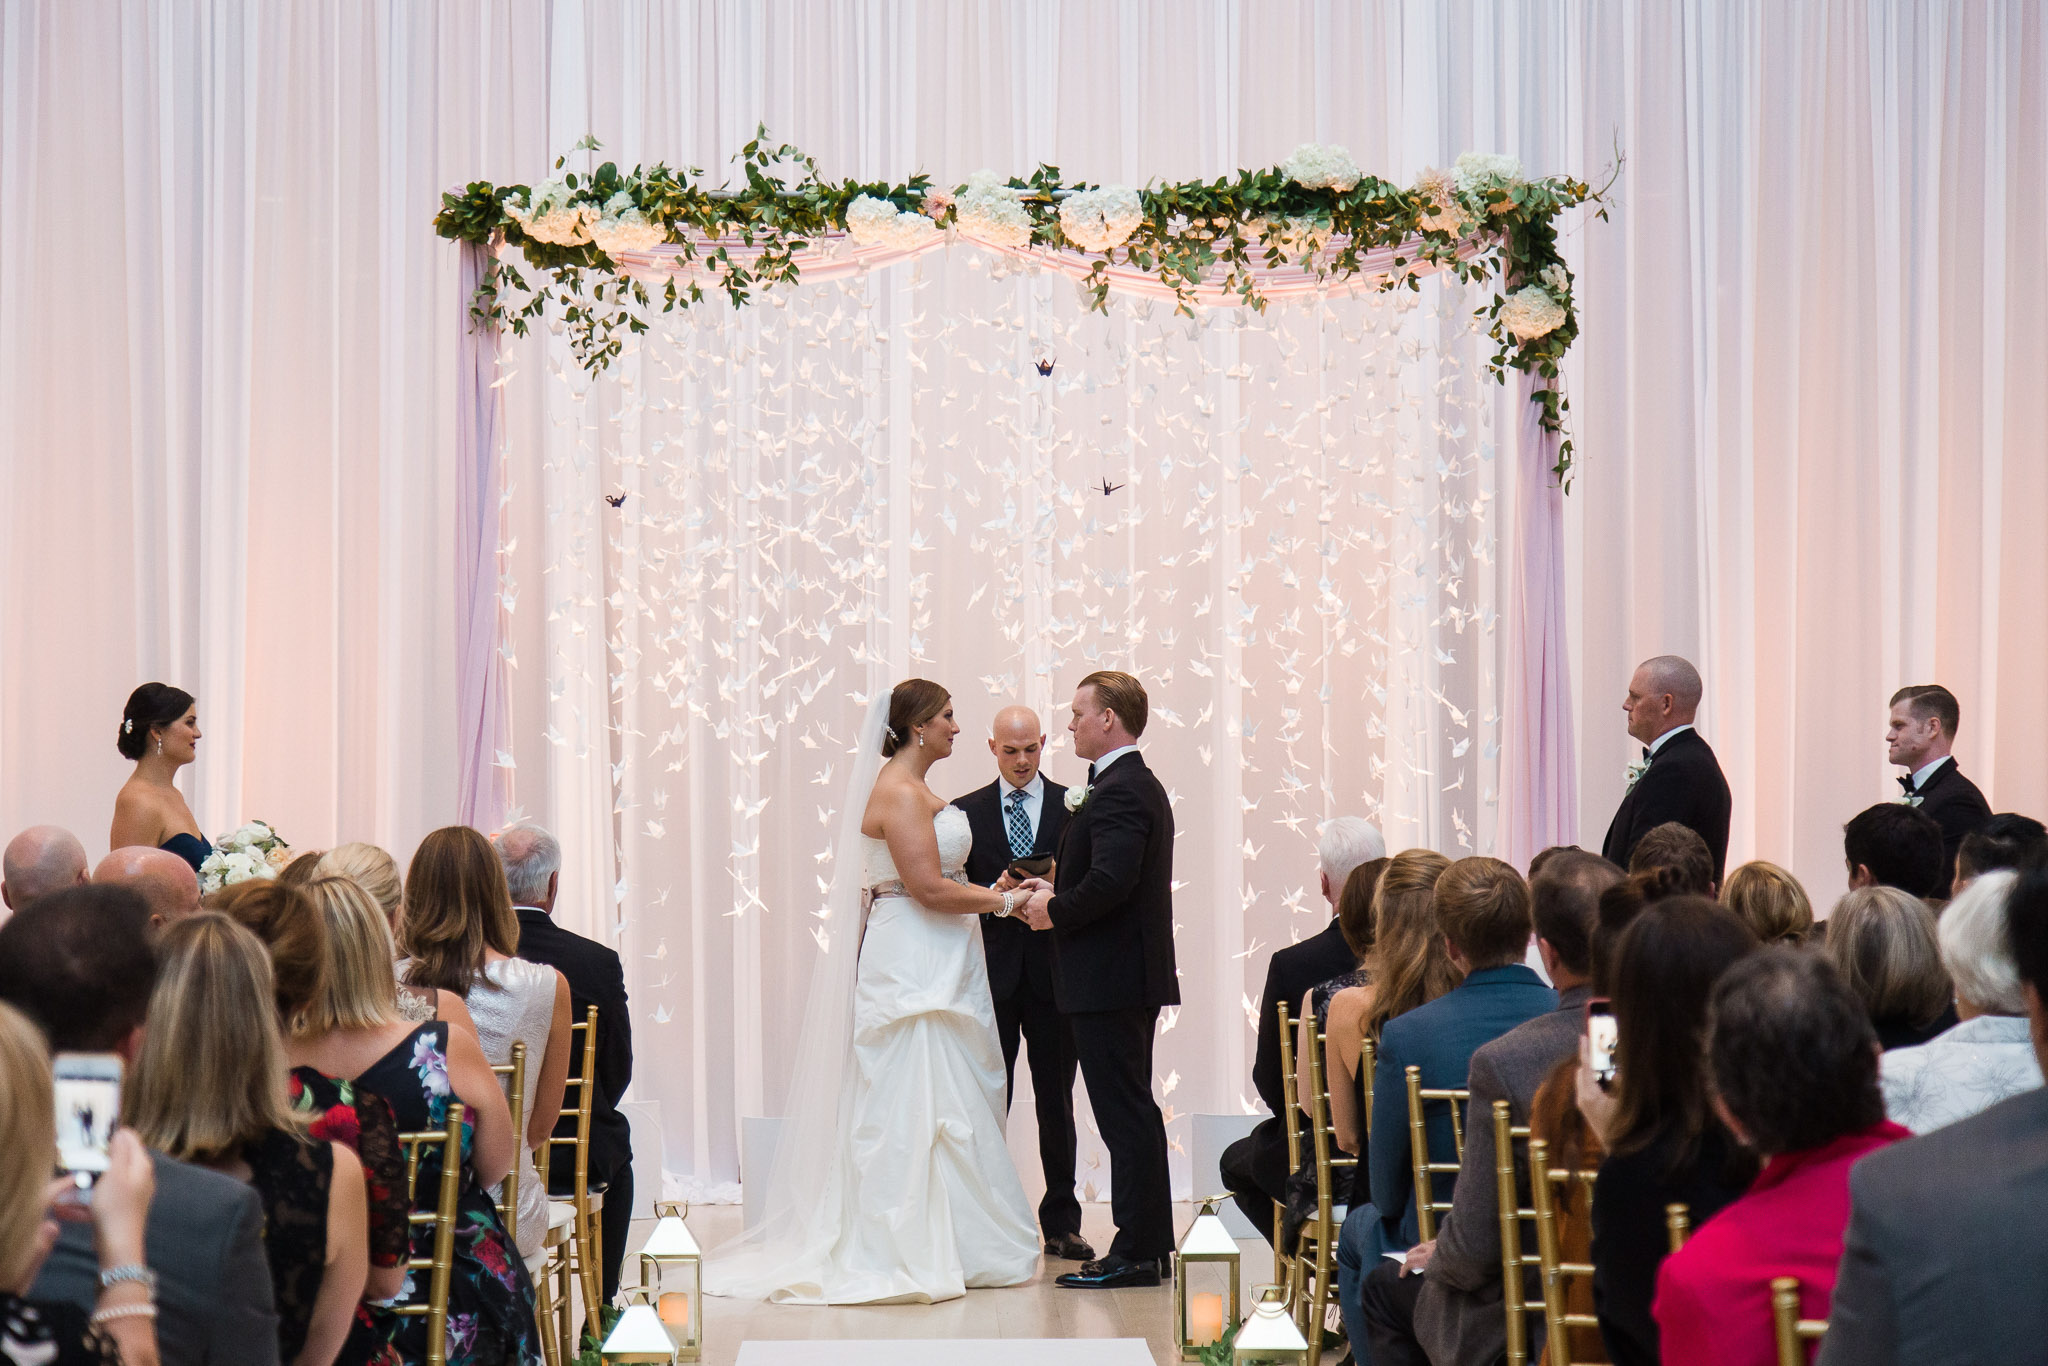 Elegant_Event_Lighting_Chicago_Art_Institute_Griffin_Court_Wedding_Ceremony_Arch_Cranes_White_Draping_Backdrop_Blush_Pink